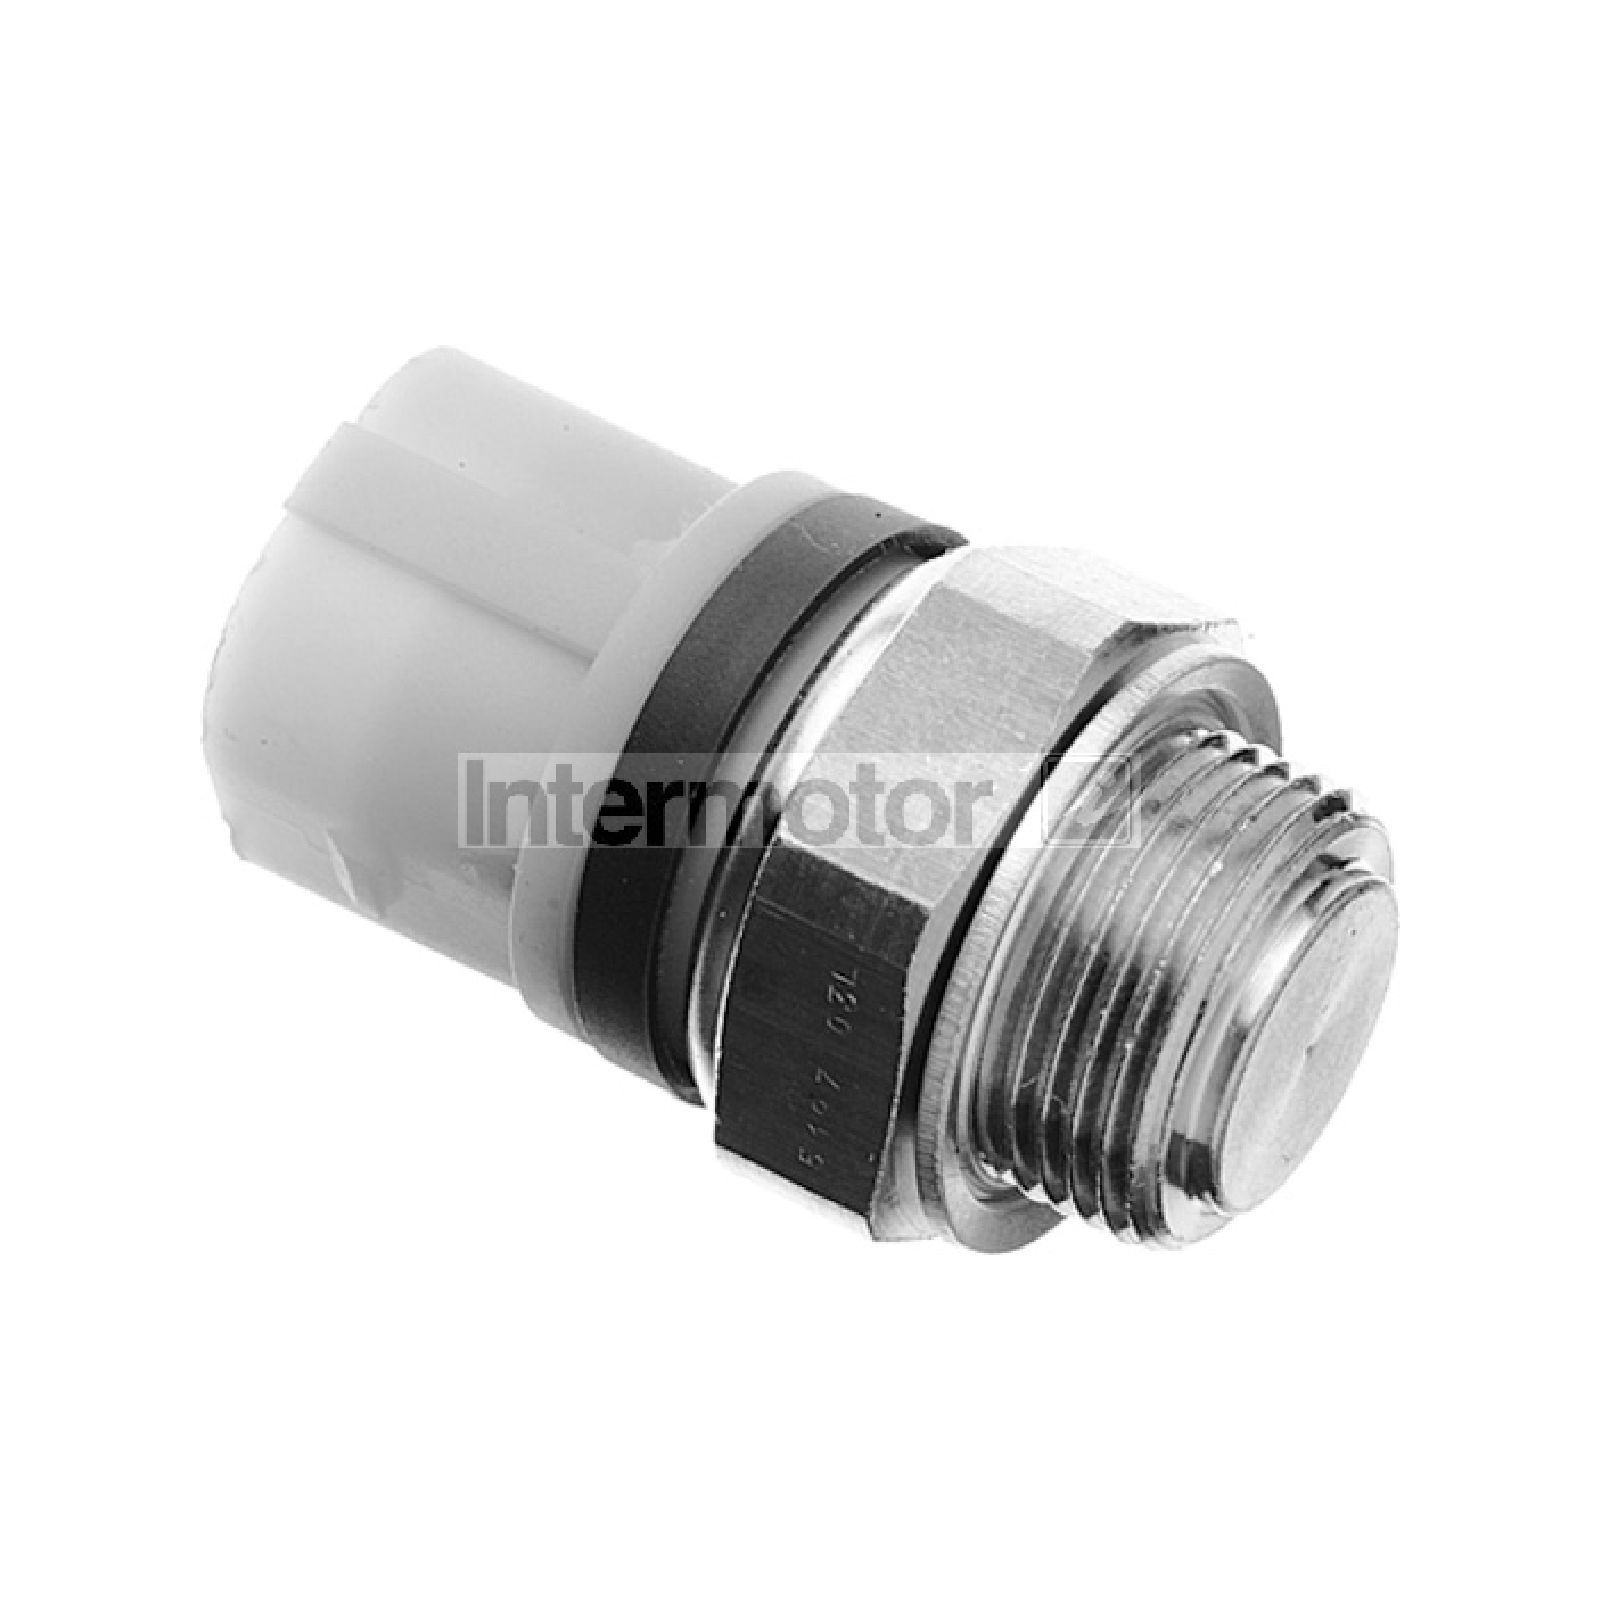 Cooling Fan Temperature Switch : Vw polo n v brown housing intermotor radiator fan